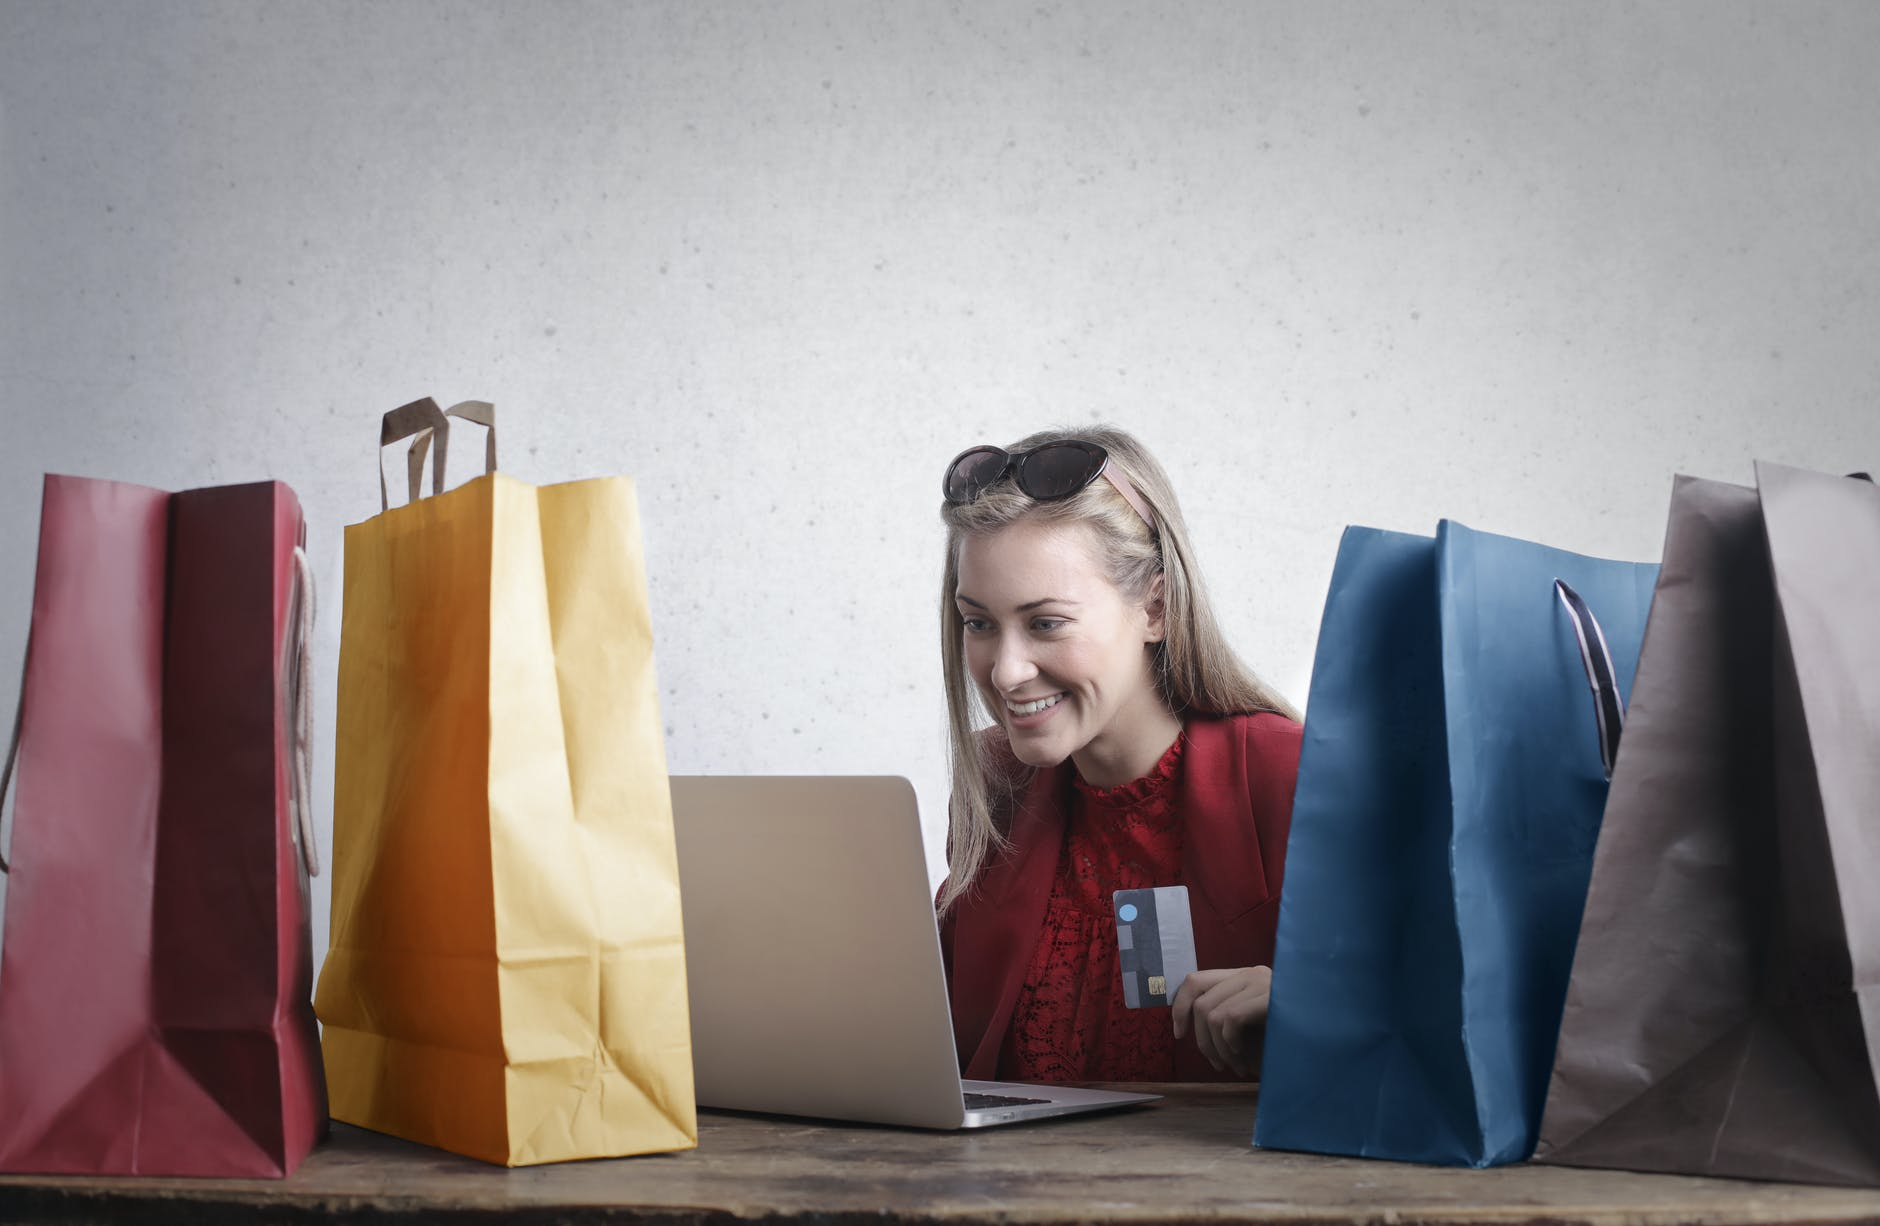 COVID-19 Effects on eCommerce - Digital Transformation